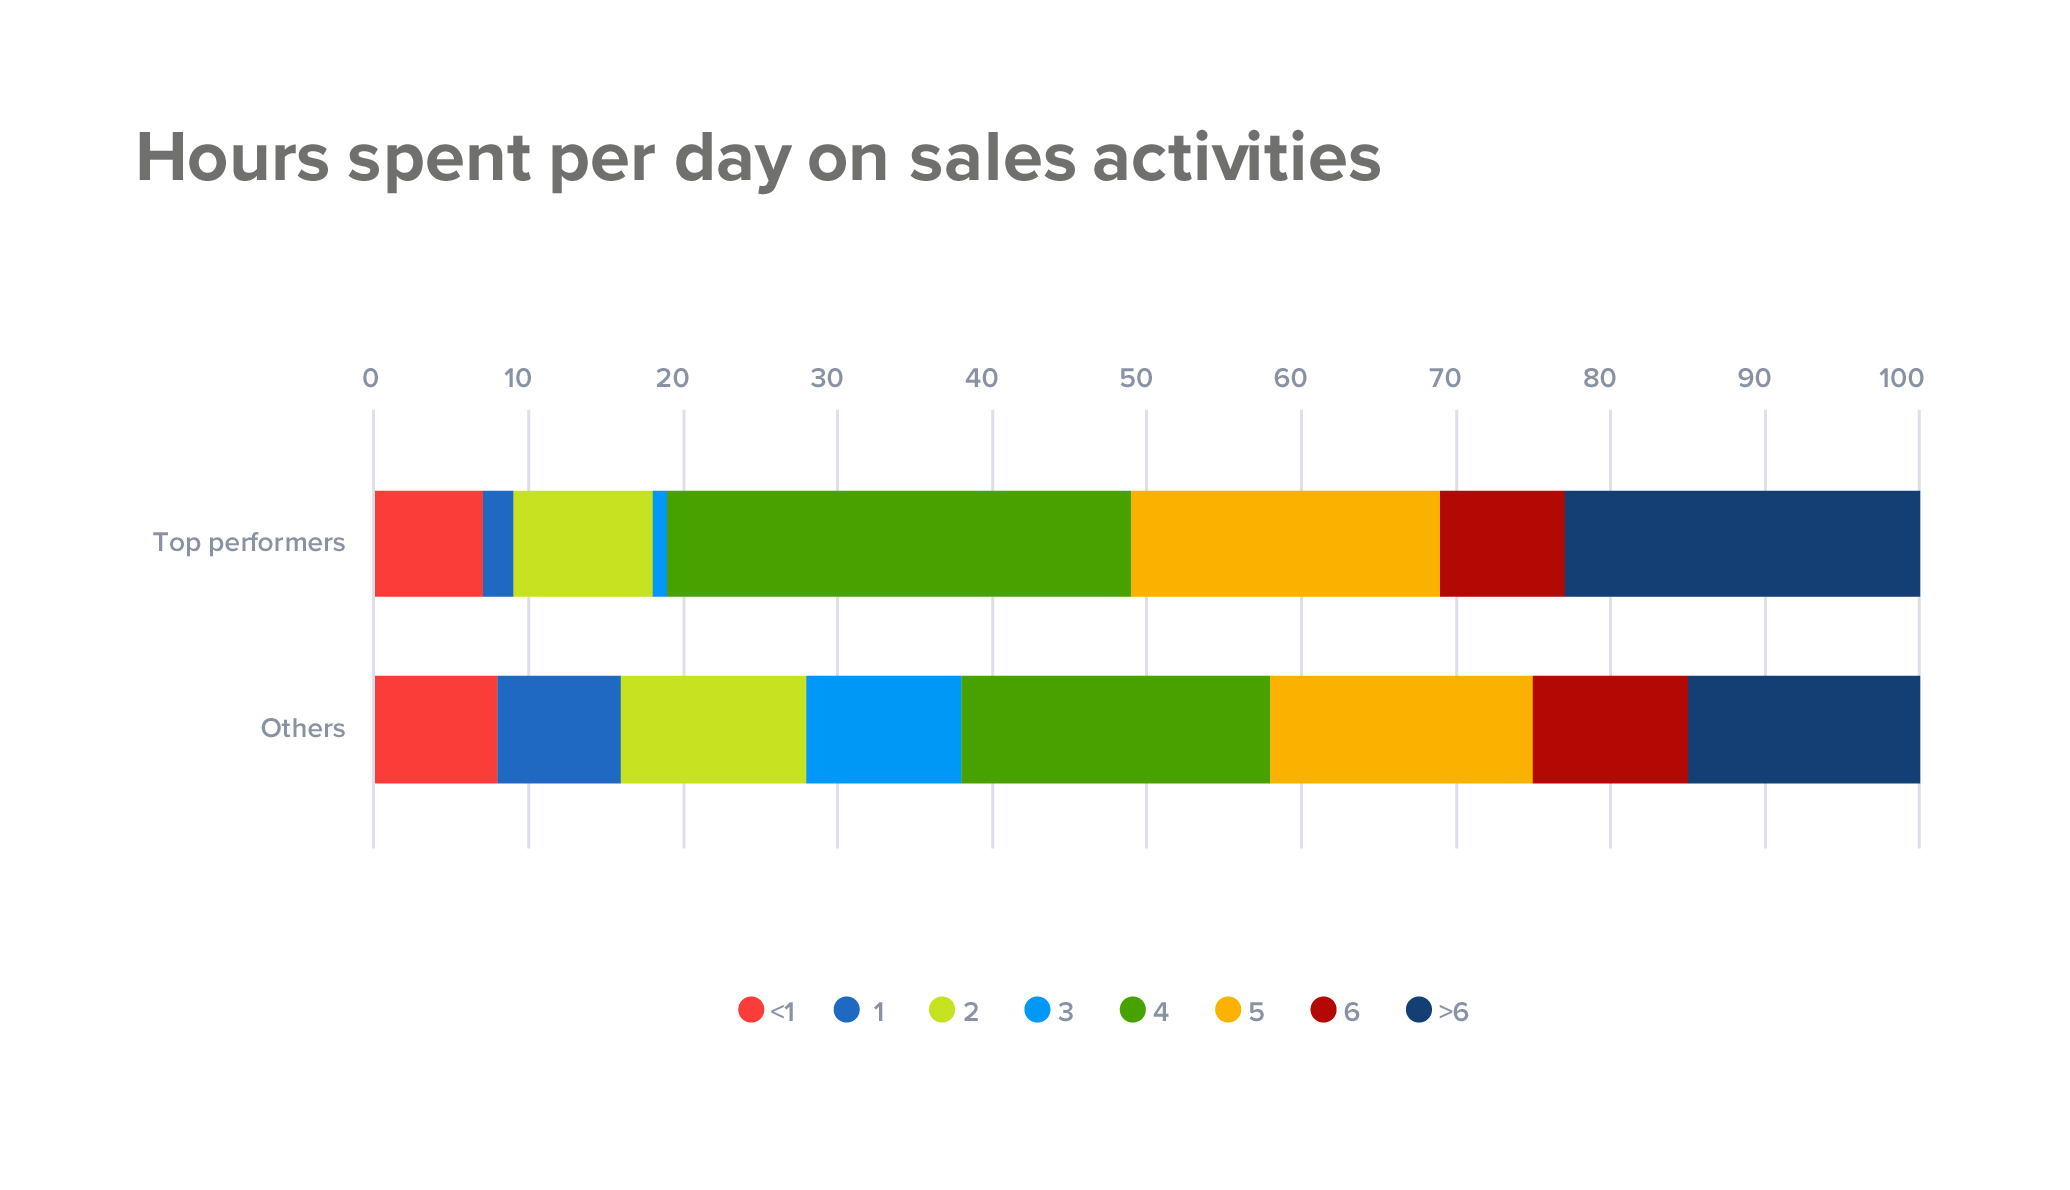 Hours spent per day on sales activities